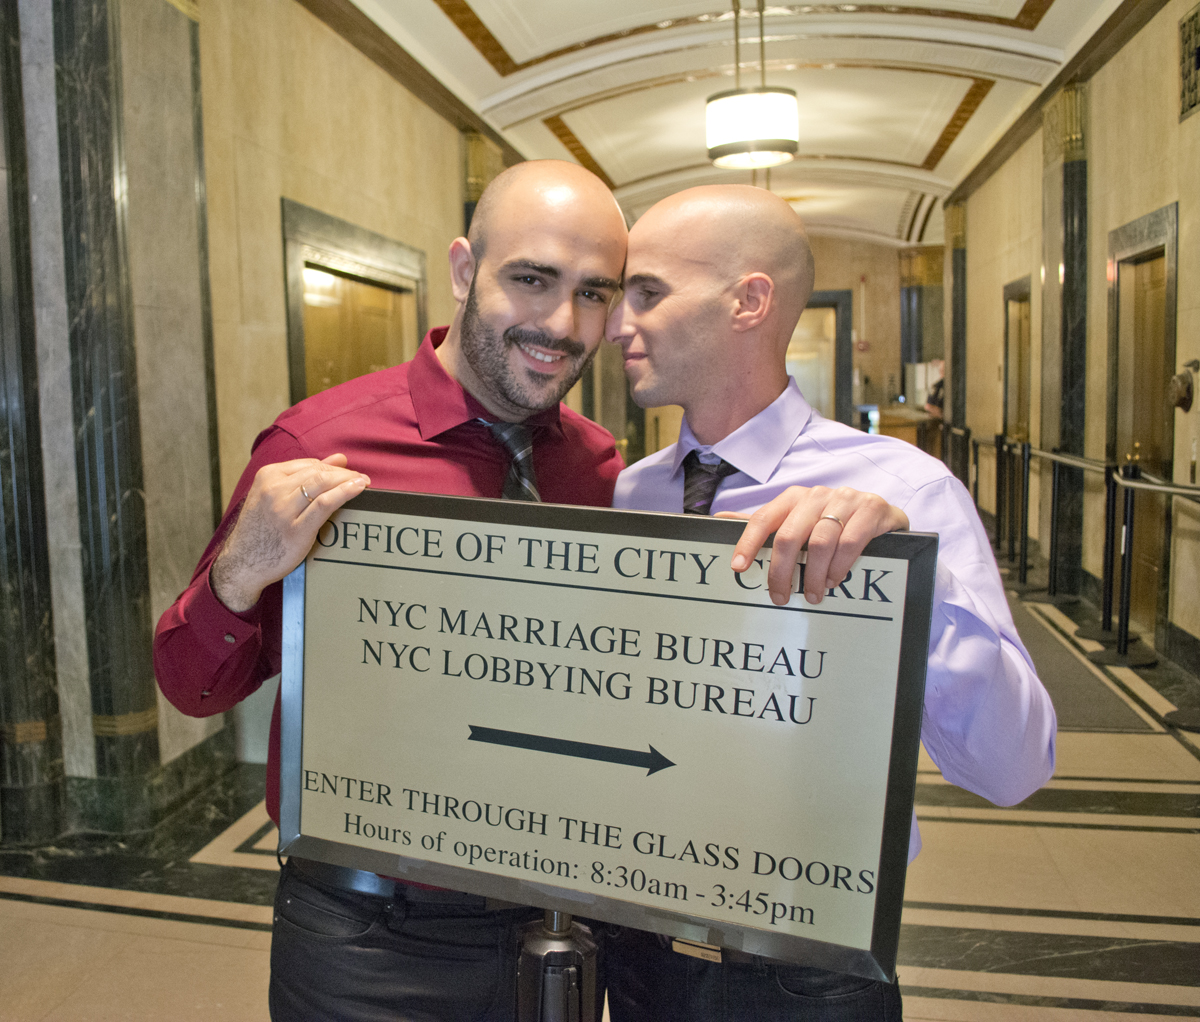 2 grooms pose at City Hall Marriage Bureau NYC